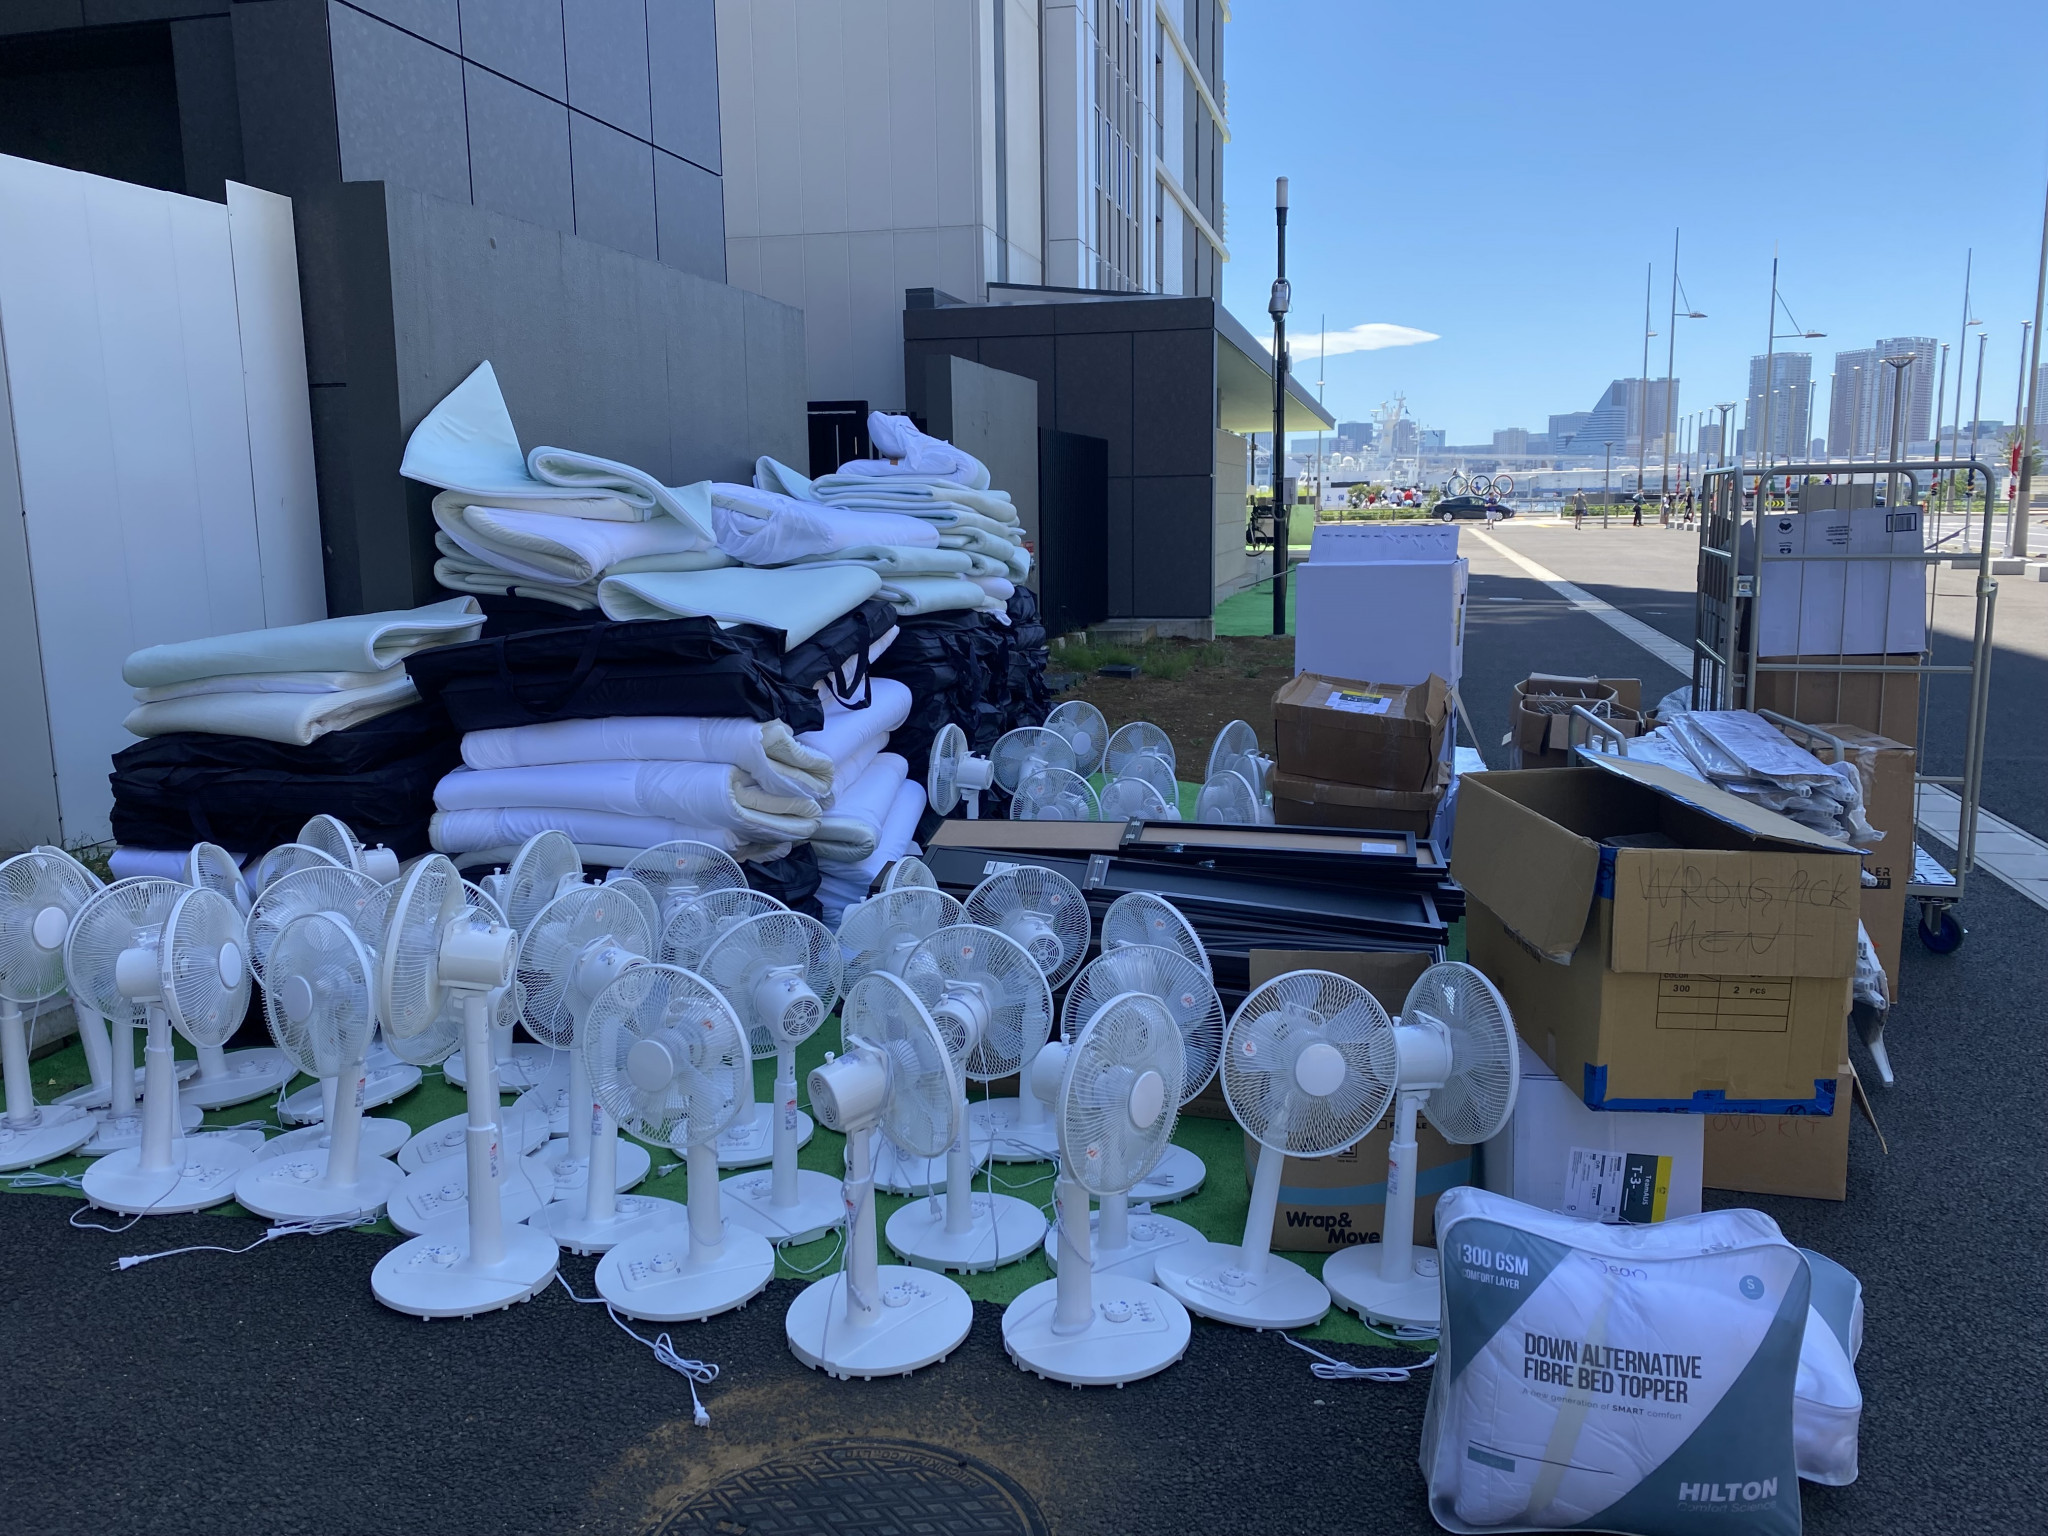 As well as food, the Australian Olympic Committee also donated bedding and electrical equipment to charity following the end of Tokyo 2020 ©AOC